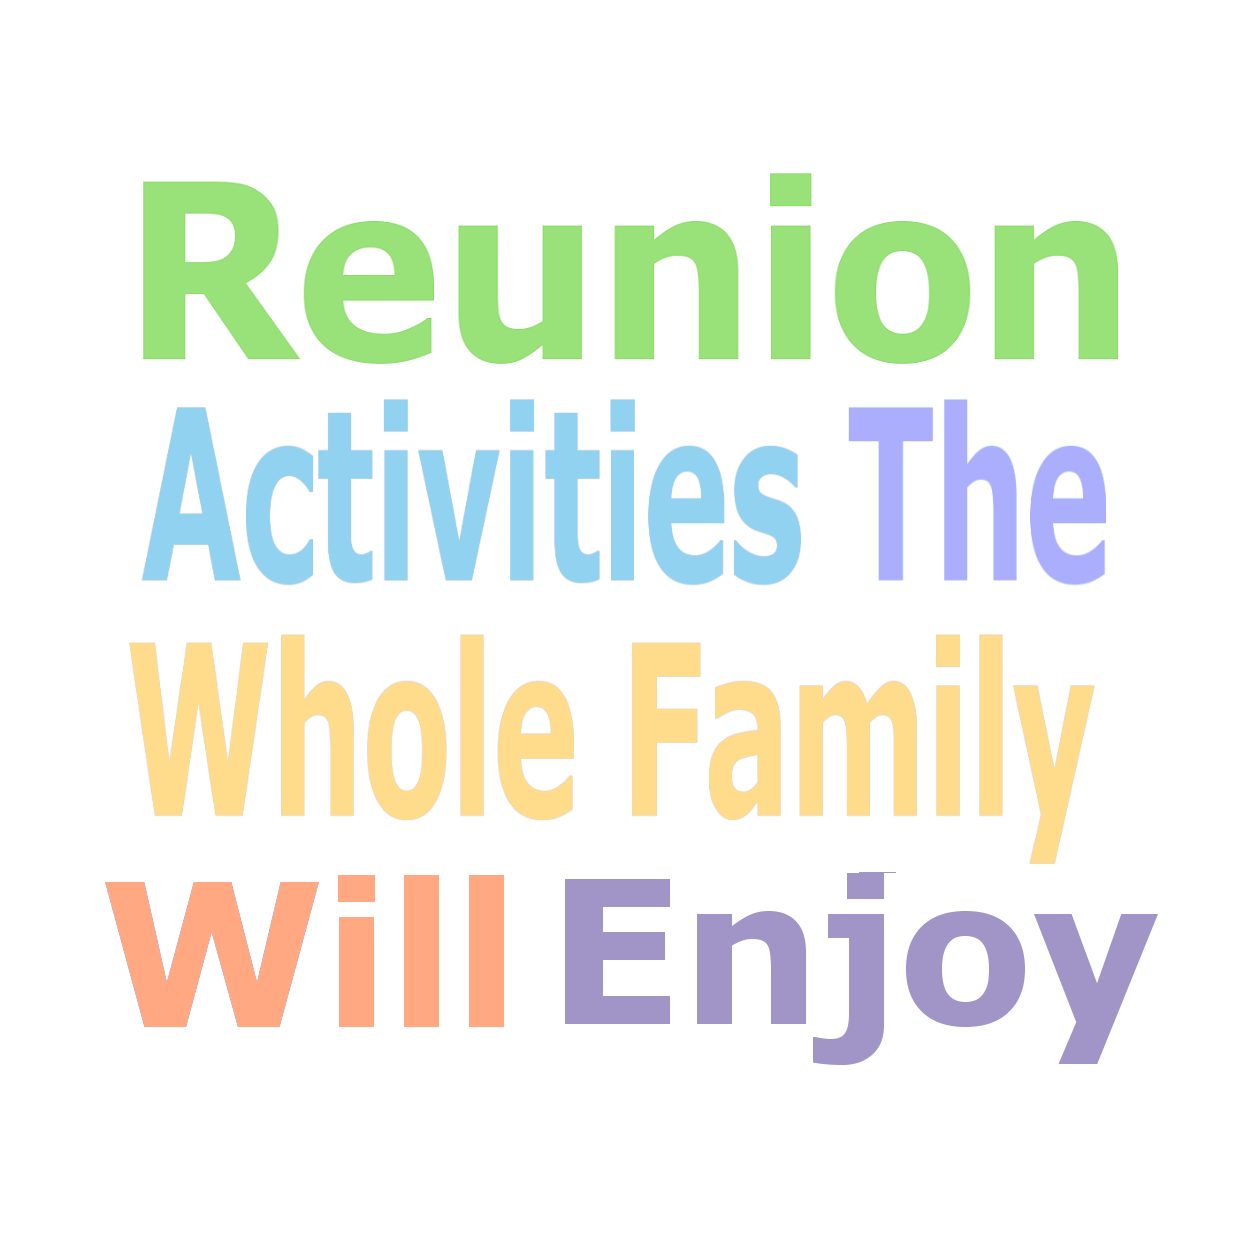 Family reunion planning blog featuring ideas, activities, checklists ...